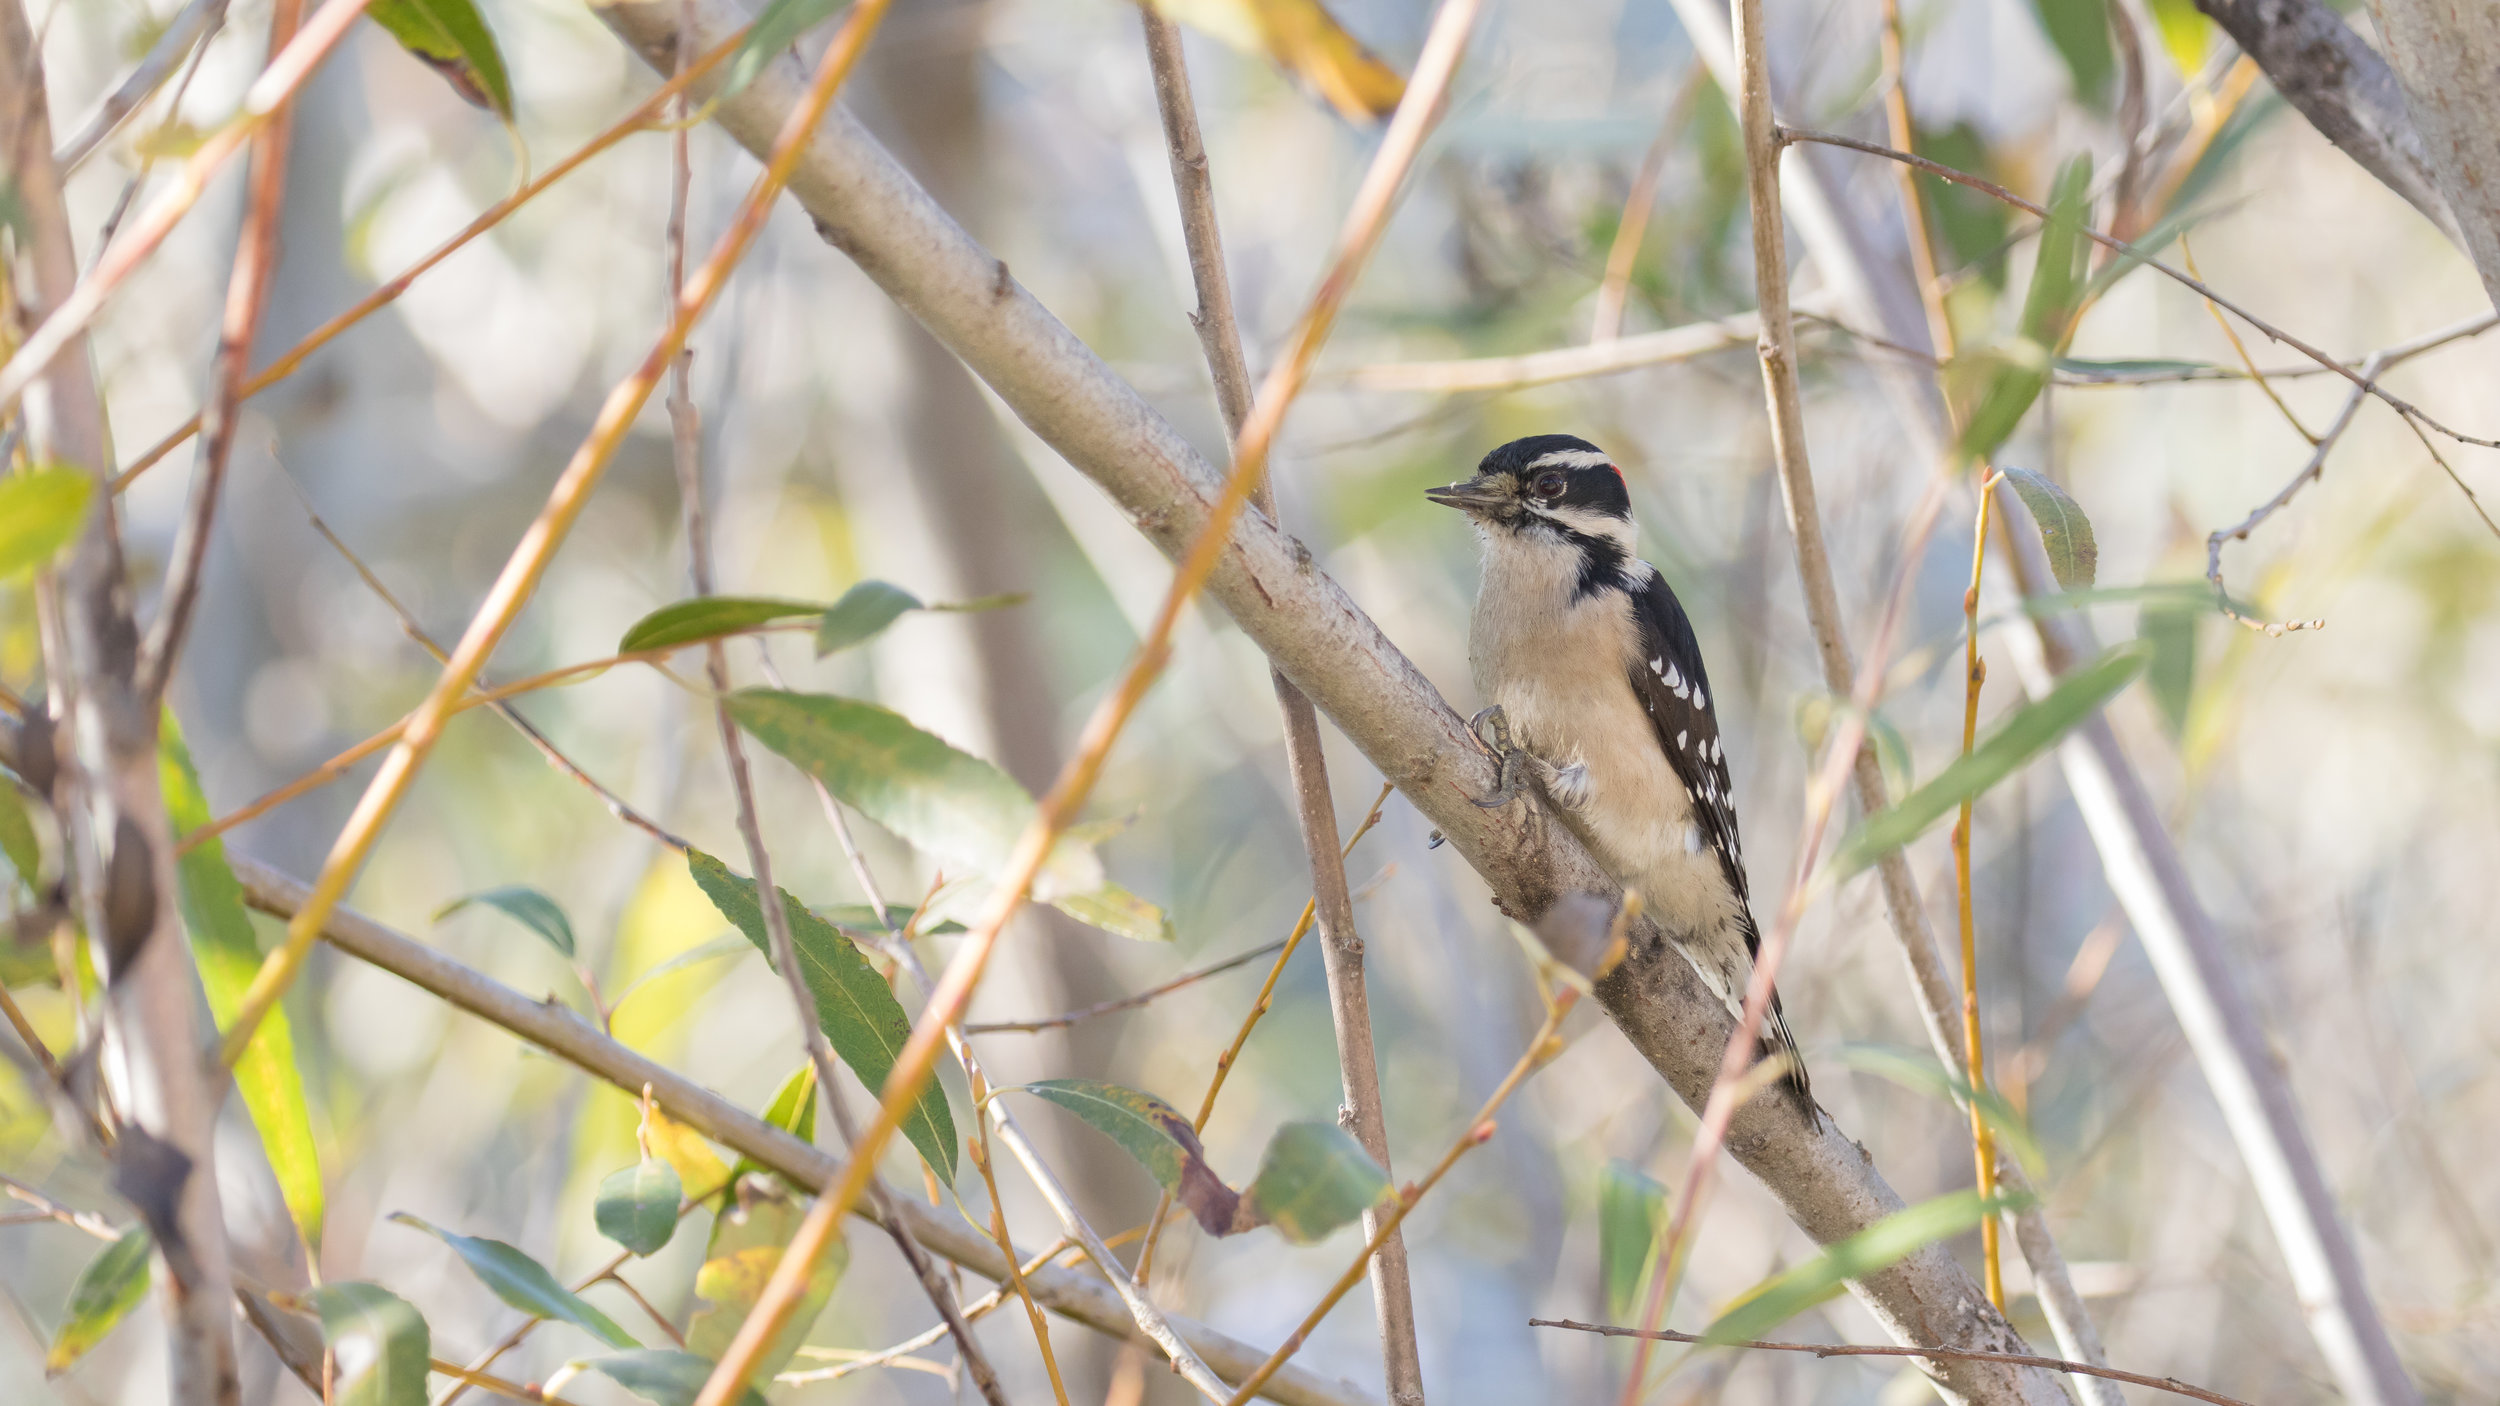 Downy Woodpecker (Picoides pubescens) at the Laguna Niguel Regional Park, Orange County, California. December 2018. Not baited. Not called in.